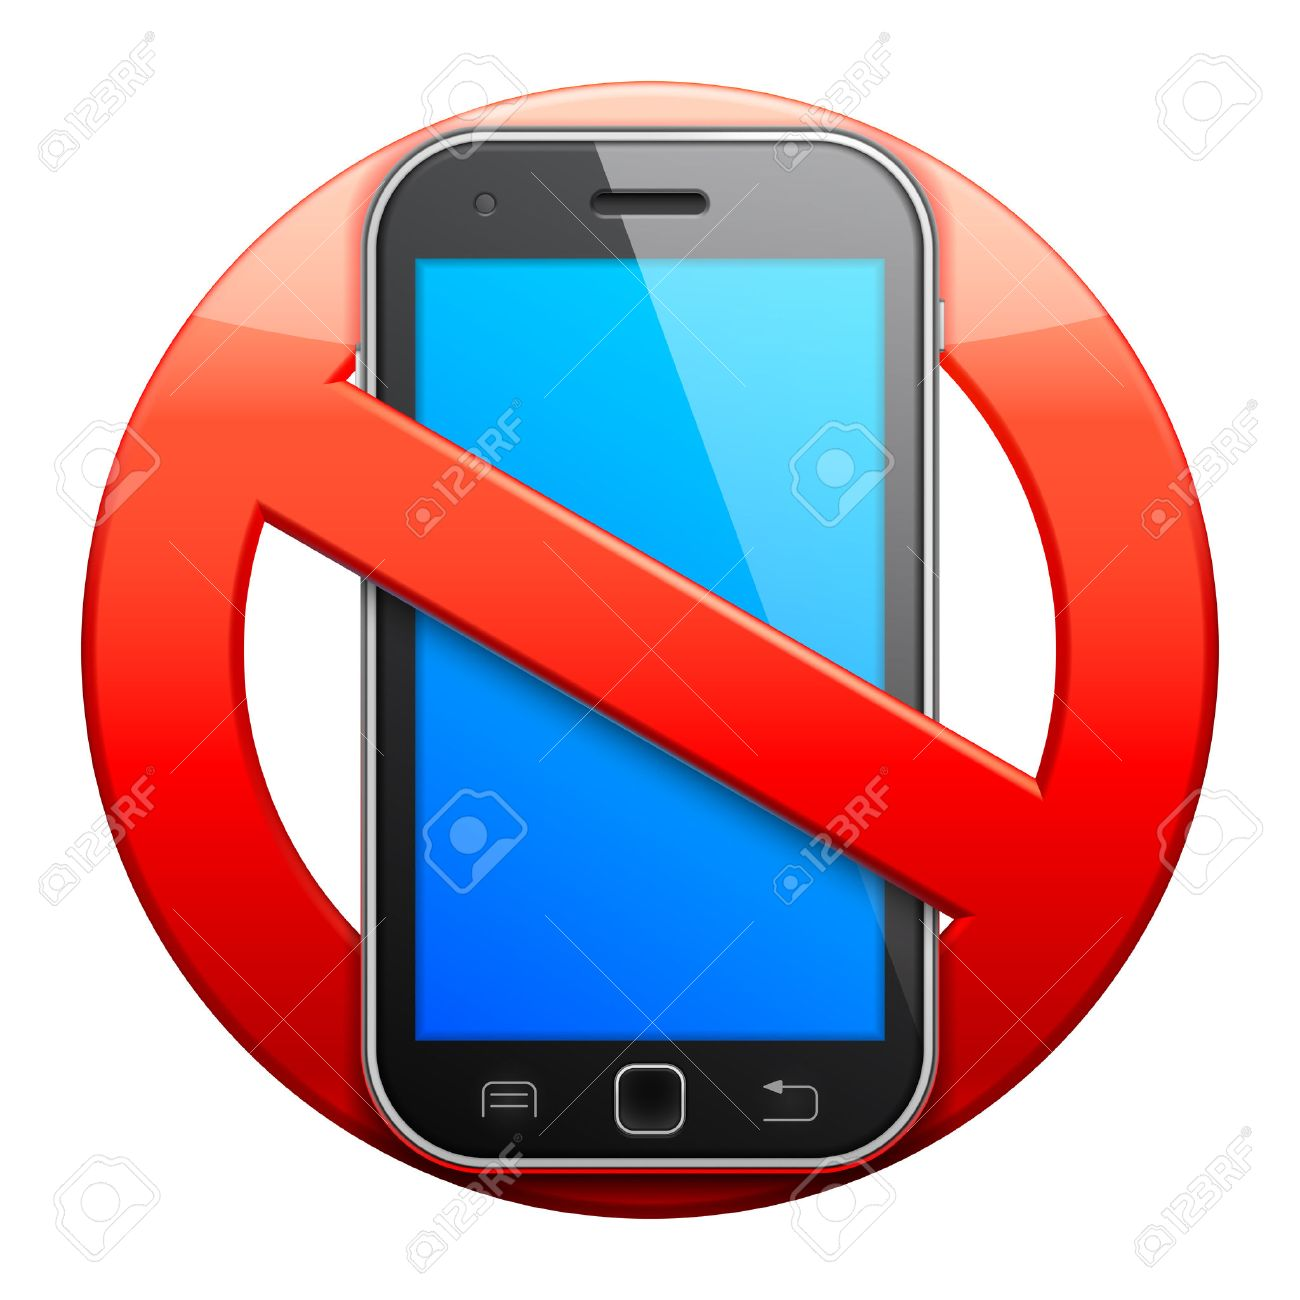 No cell phone sign. - 33088402